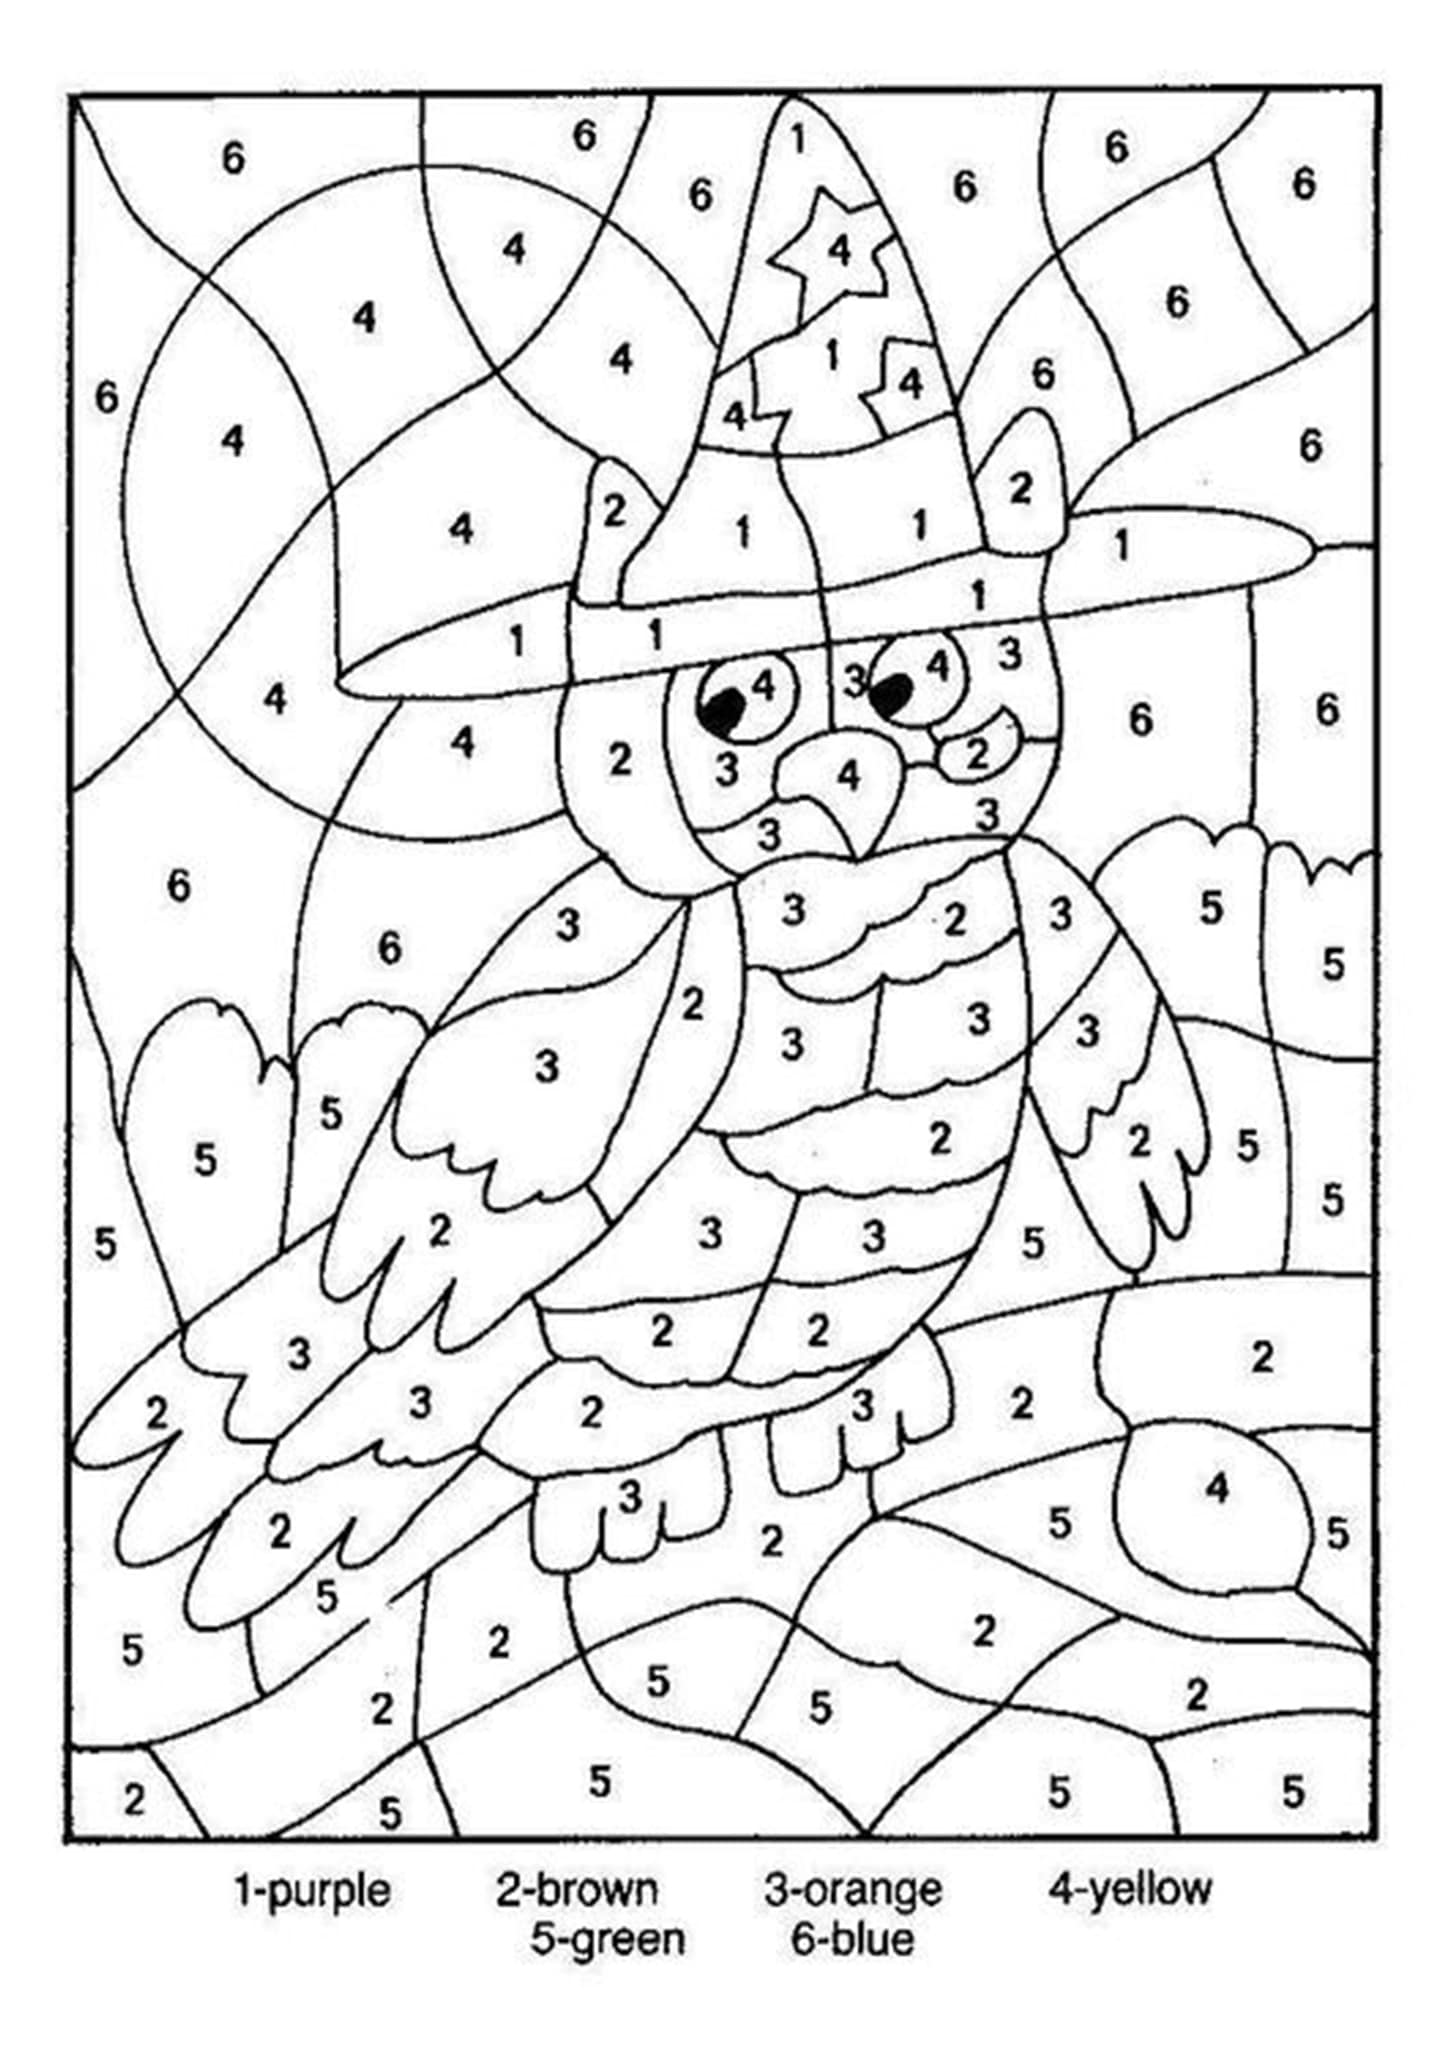 free color by number free printable color by number worksheets for kindergarten free color number by